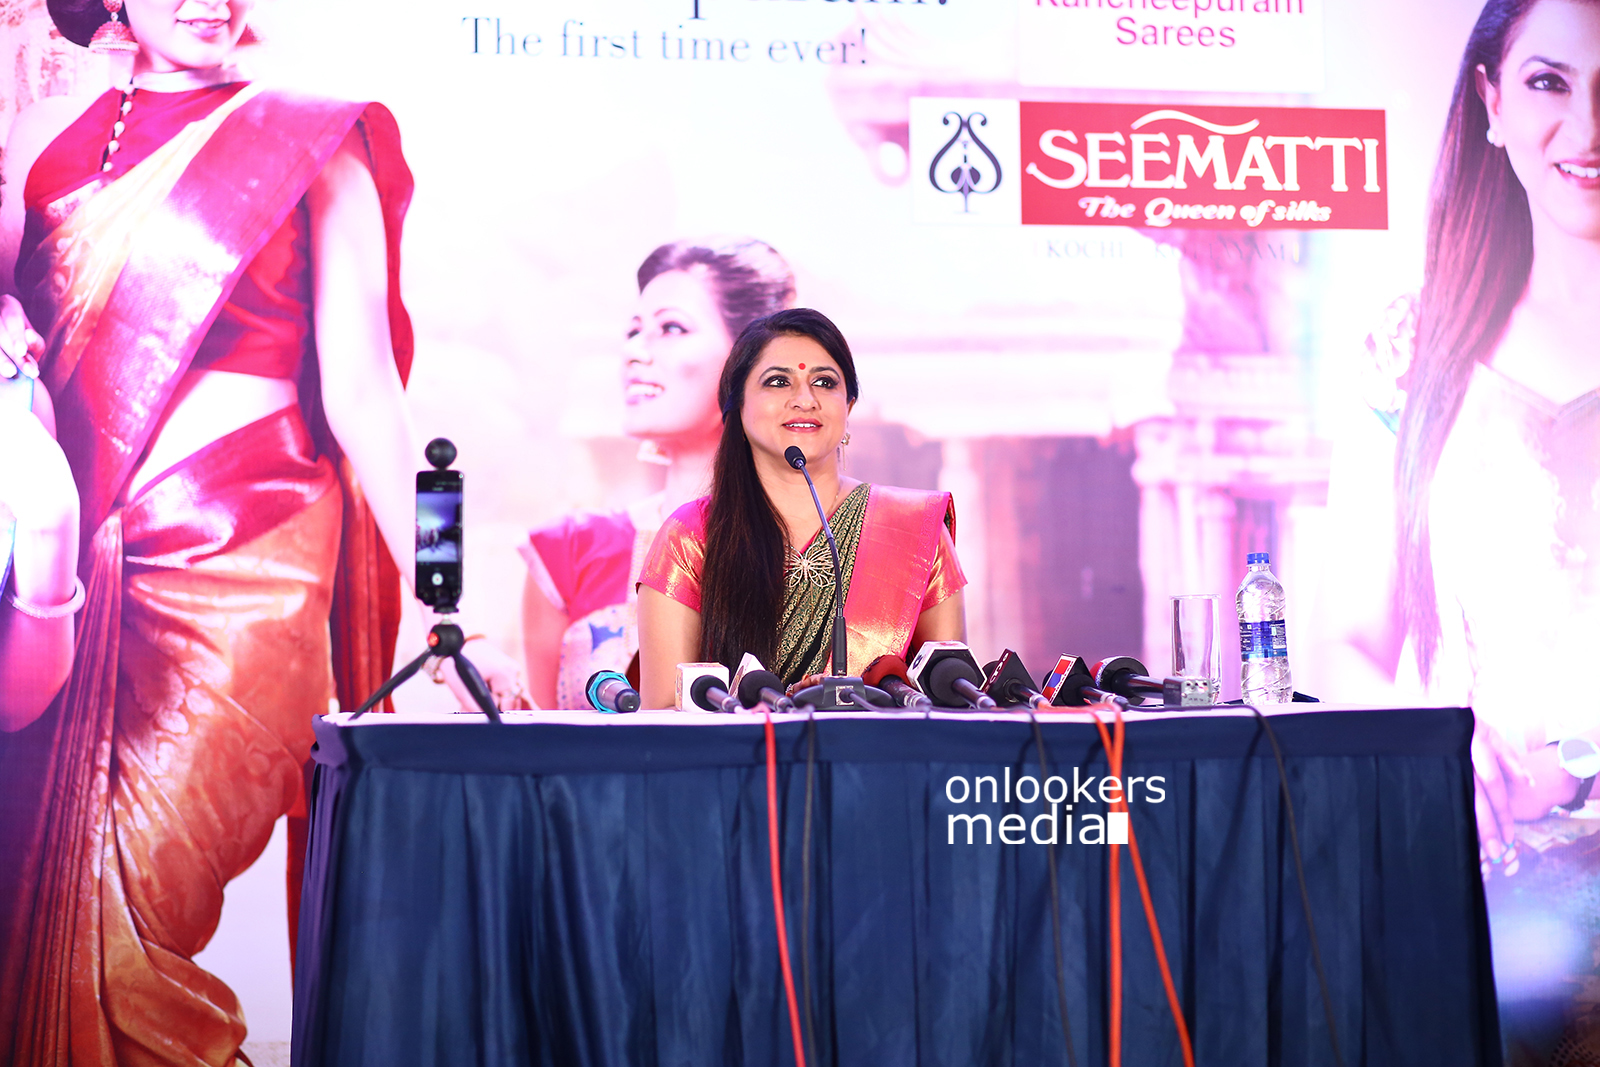 http://onlookersmedia.in/wp-content/uploads/2017/04/Seematti-Kanchi-Banaras-Bridal-Collection-2017-Press-Meet-3.jpg